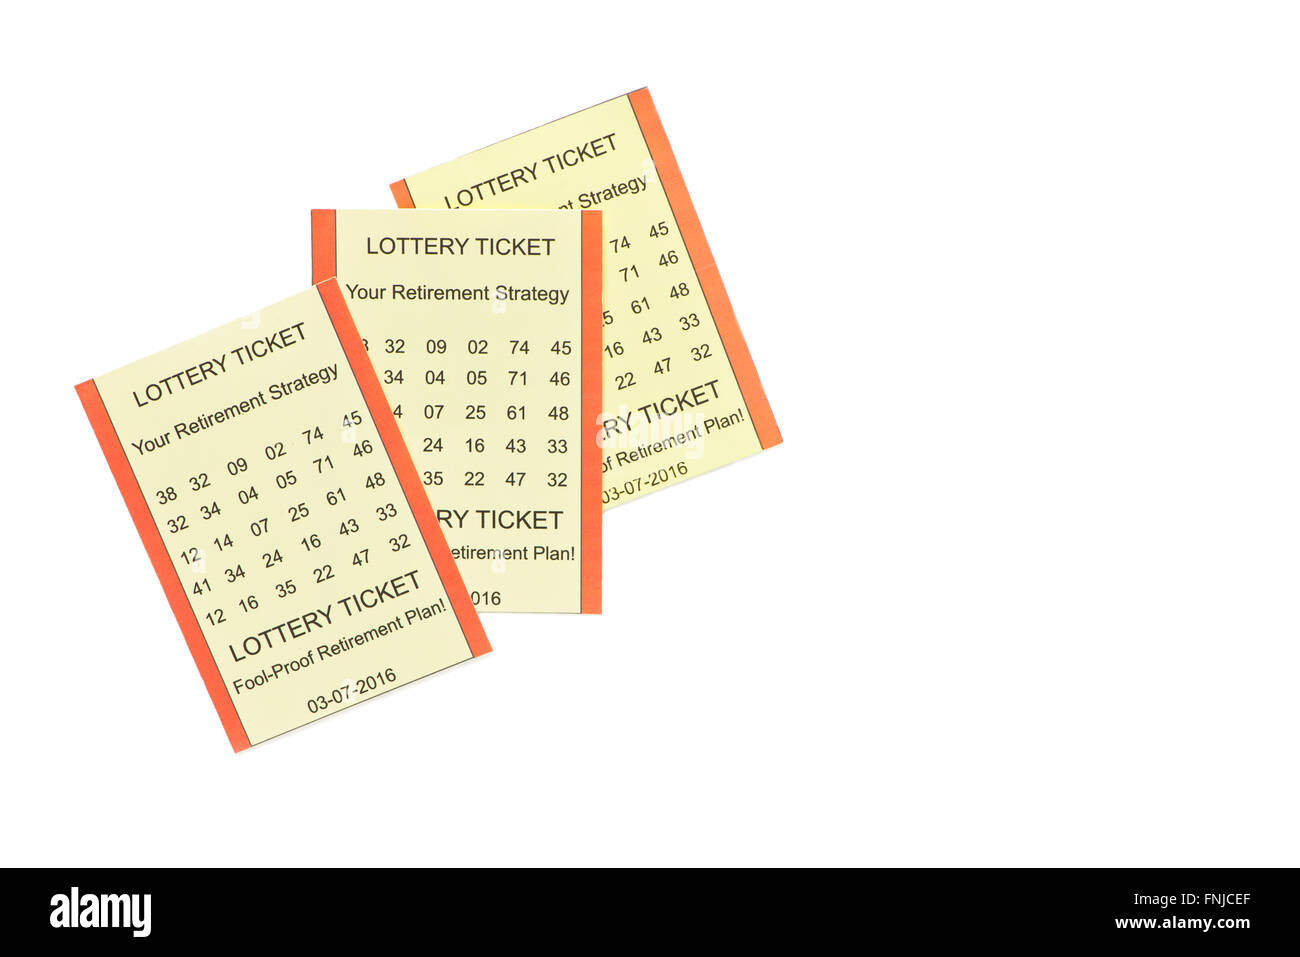 Lottery retirement plan tickets on white background with copy space on right. - Stock Image